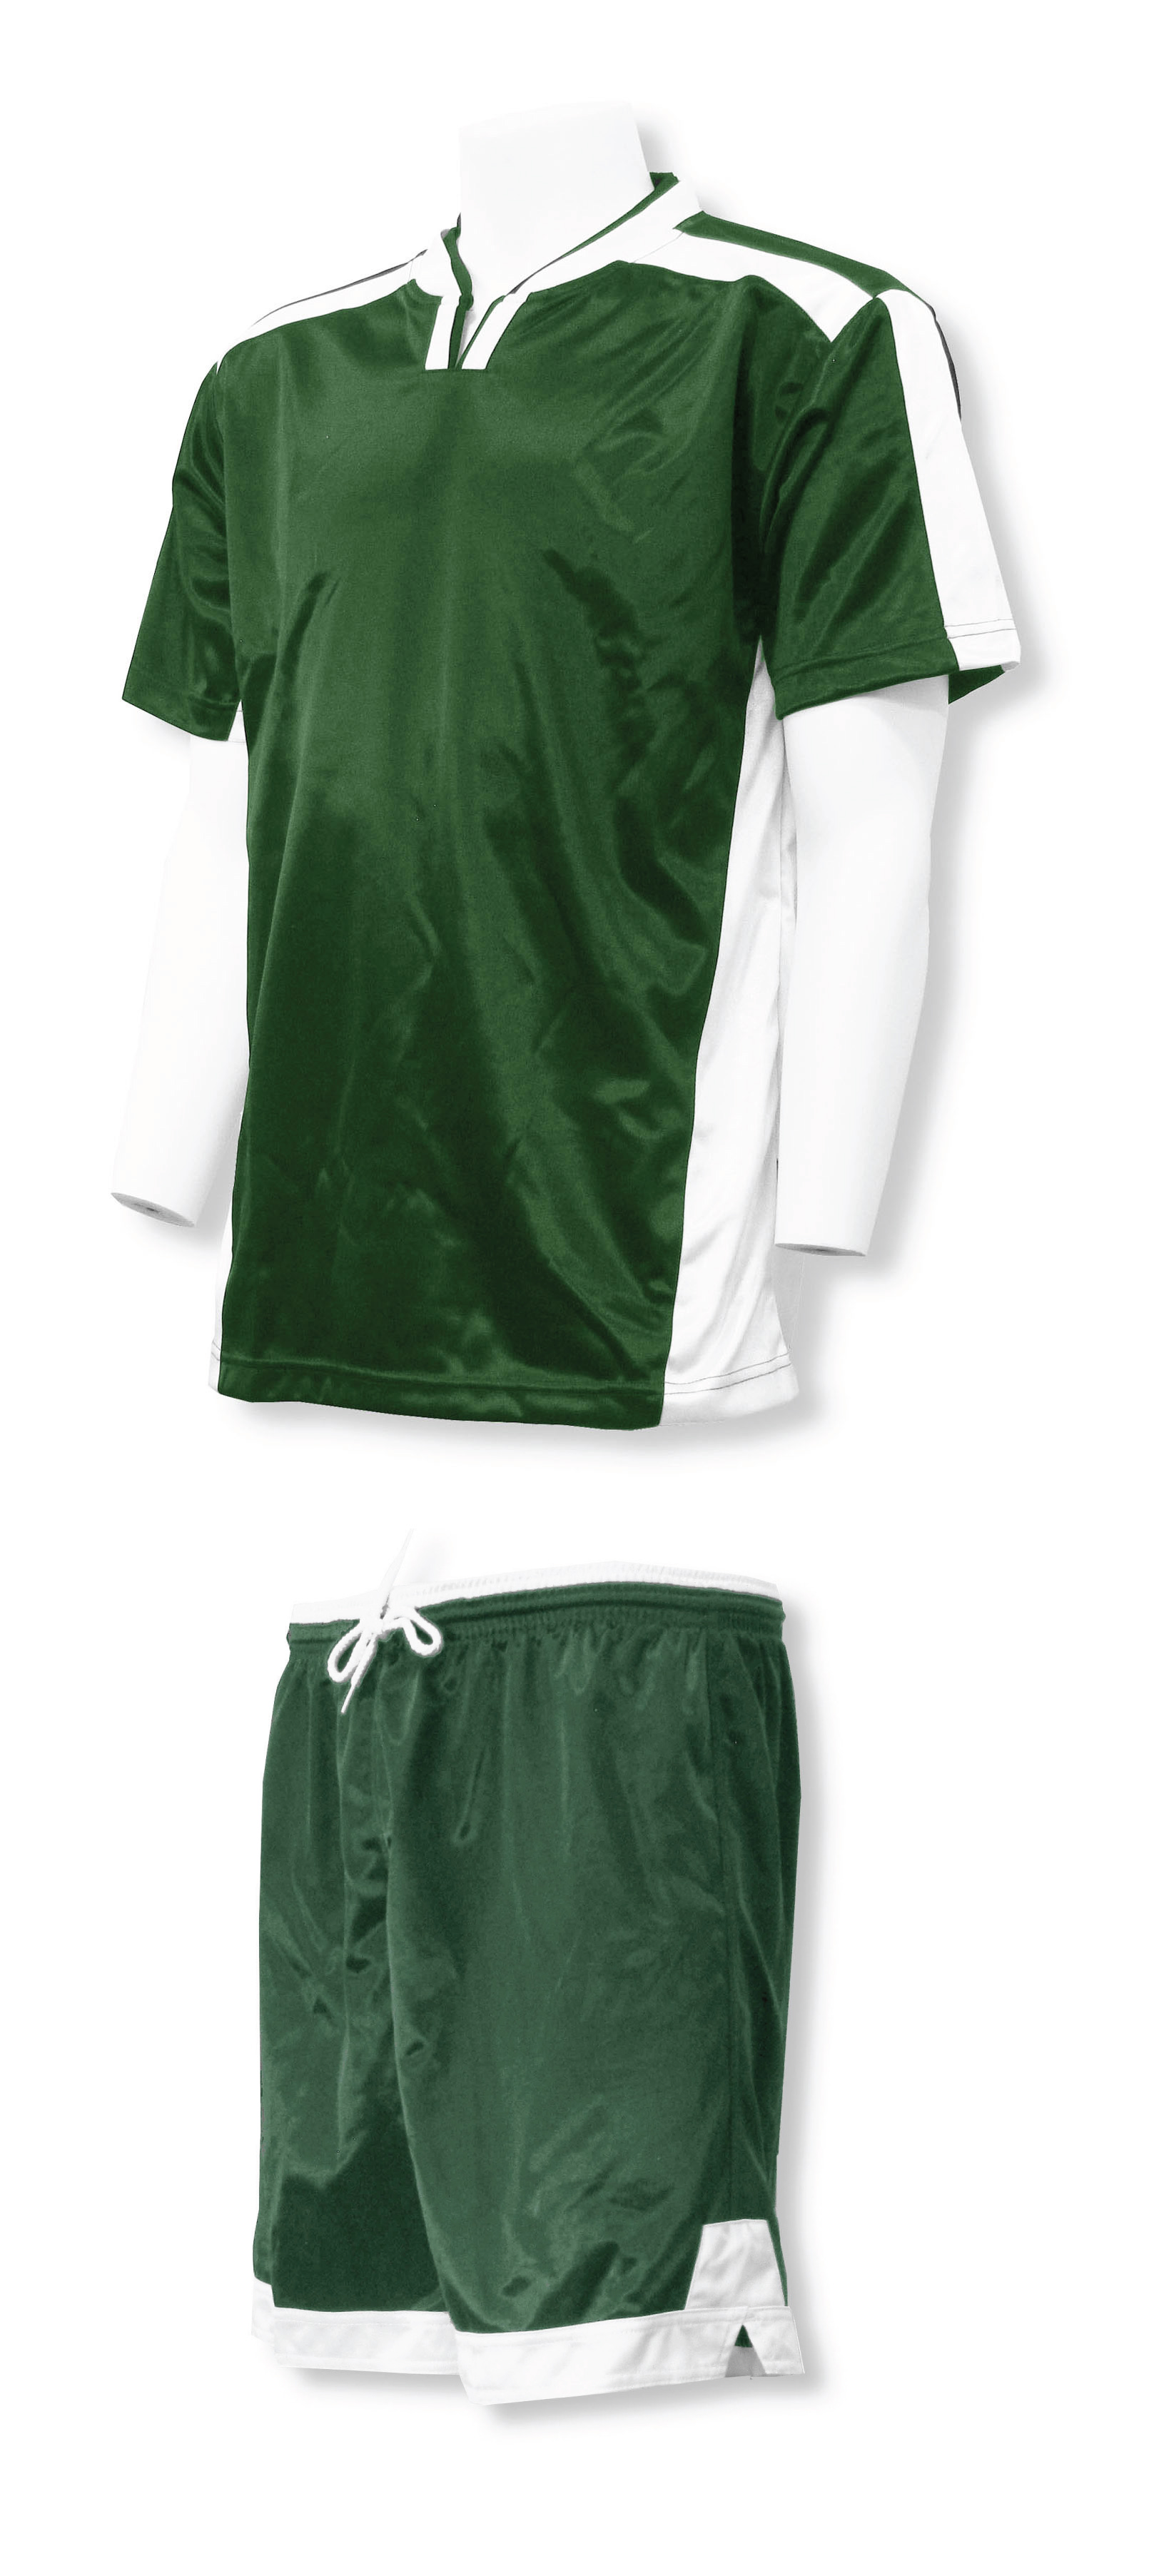 Winchester soccer uniform kit in forest/white by Code Four Athletics